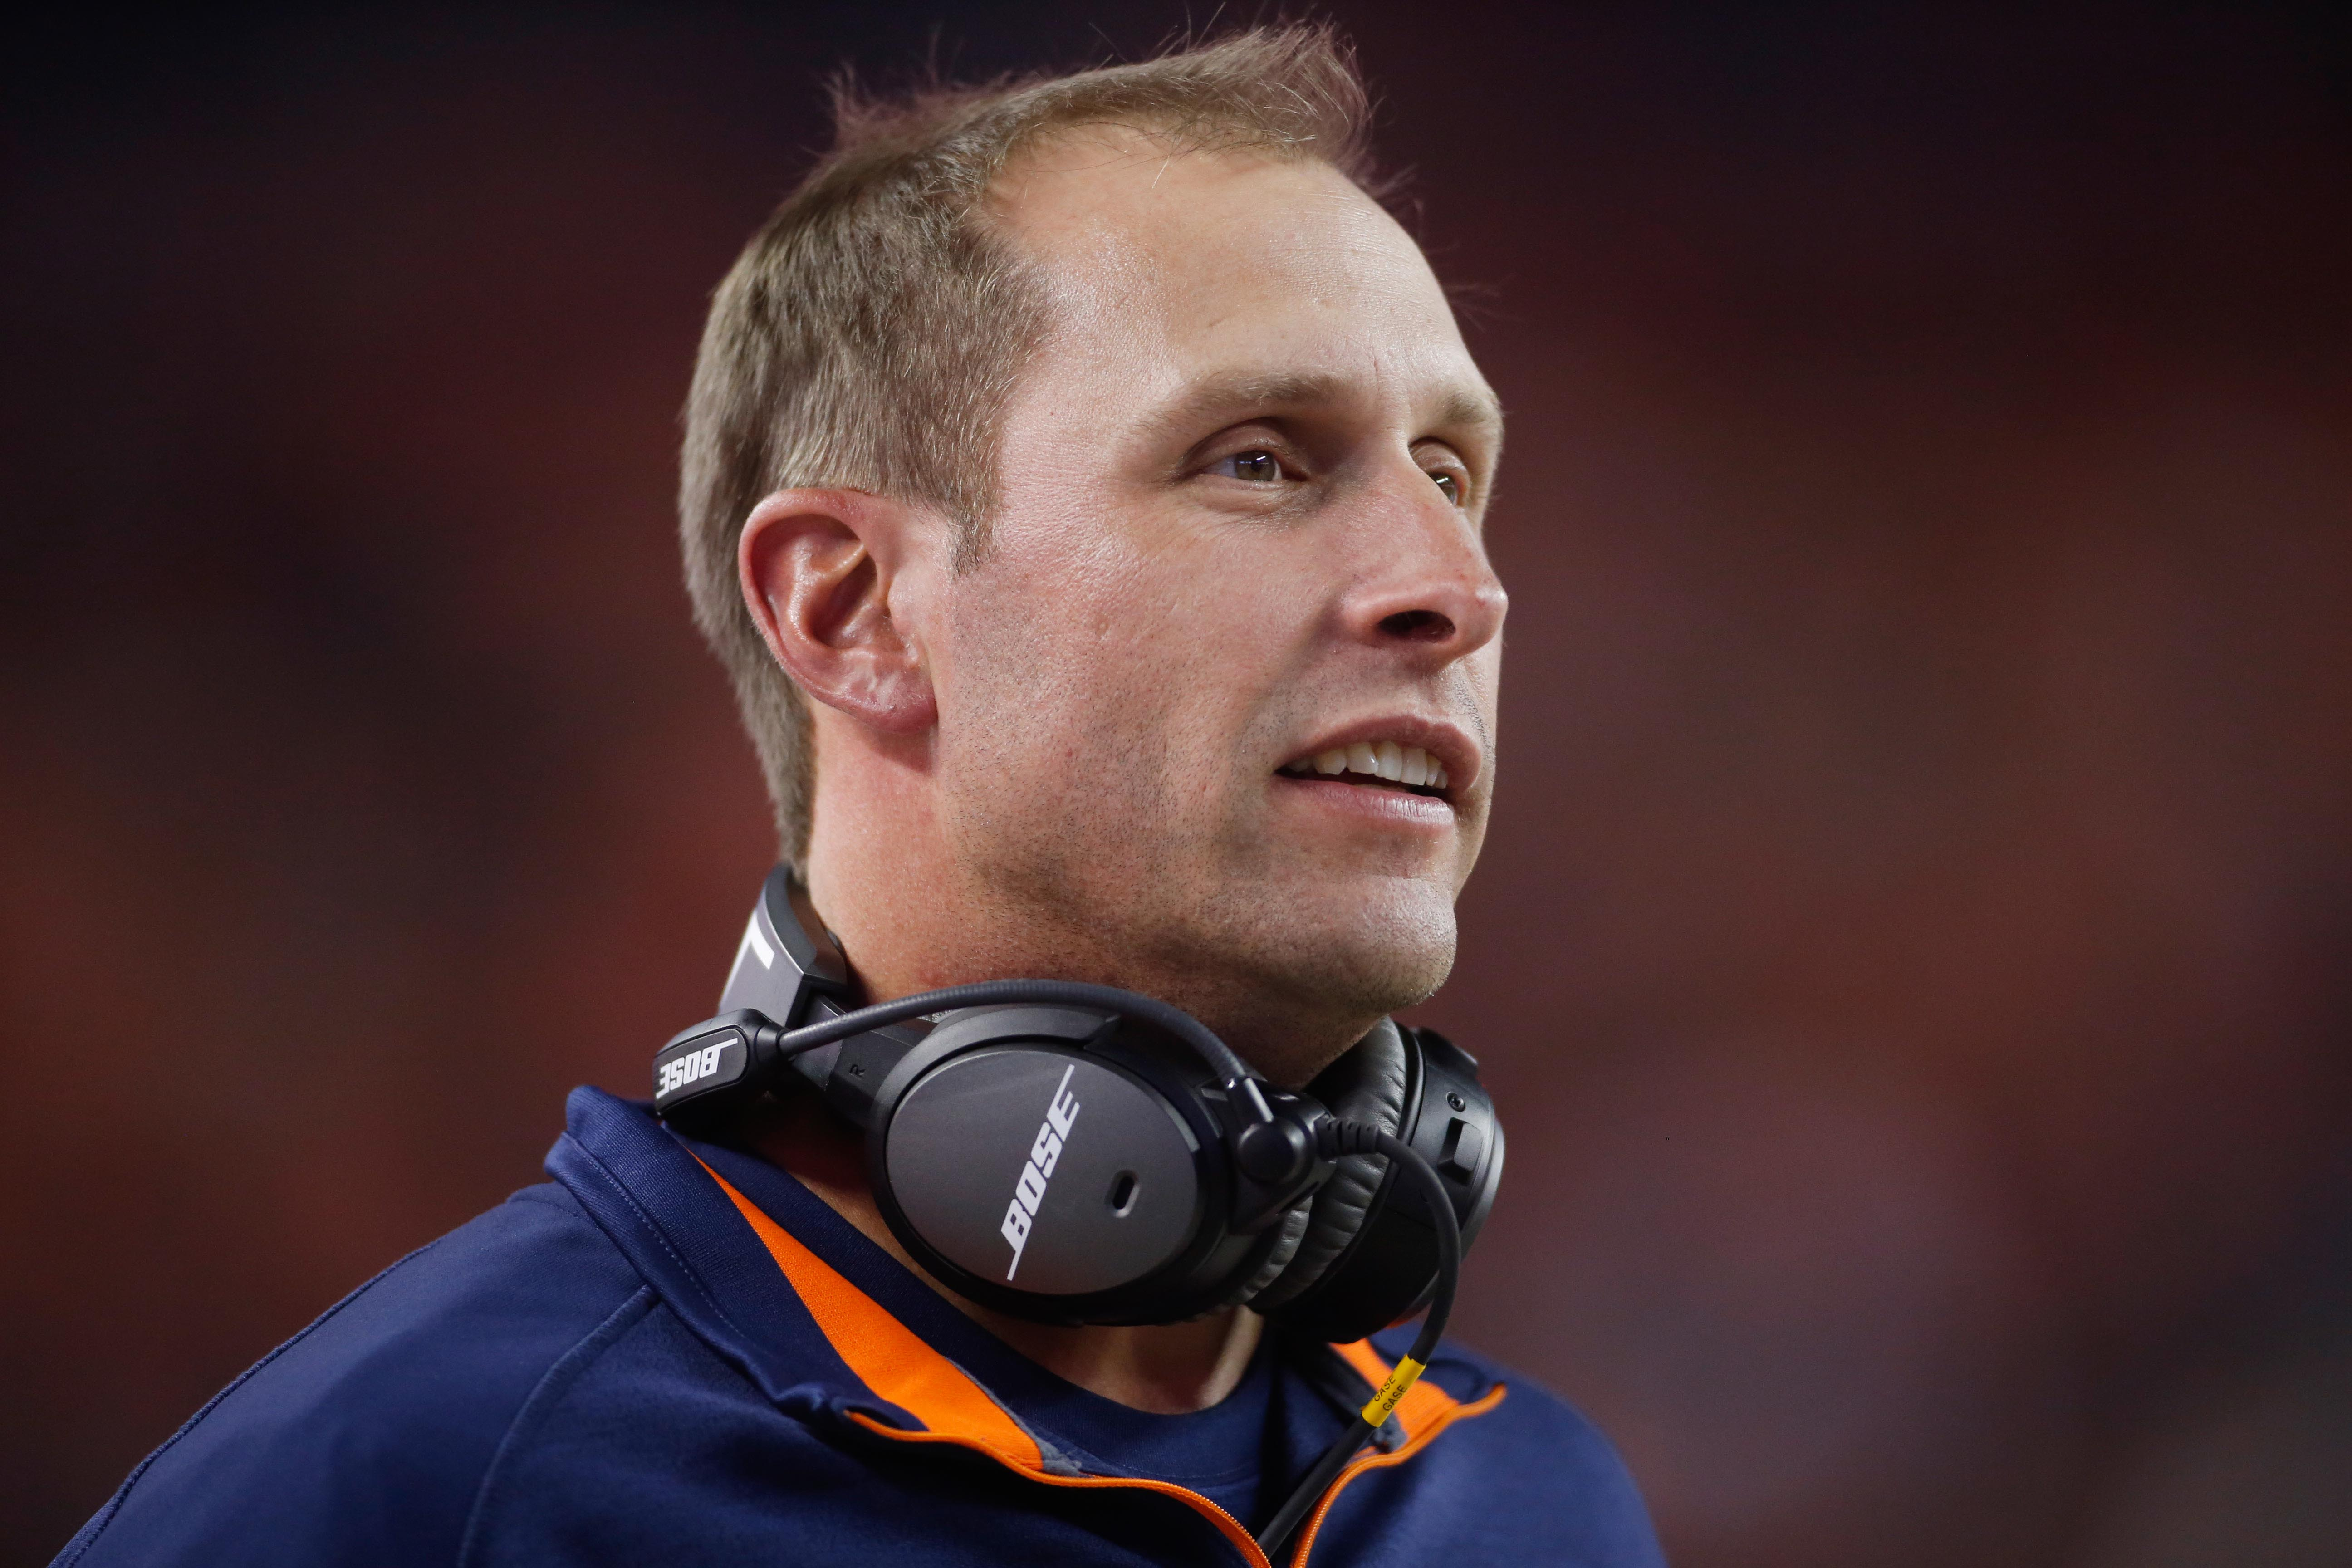 Broncos' offensive coordinator Adam Gase is now available for hire. (Chris Humphreys-USA TODAY Sports)